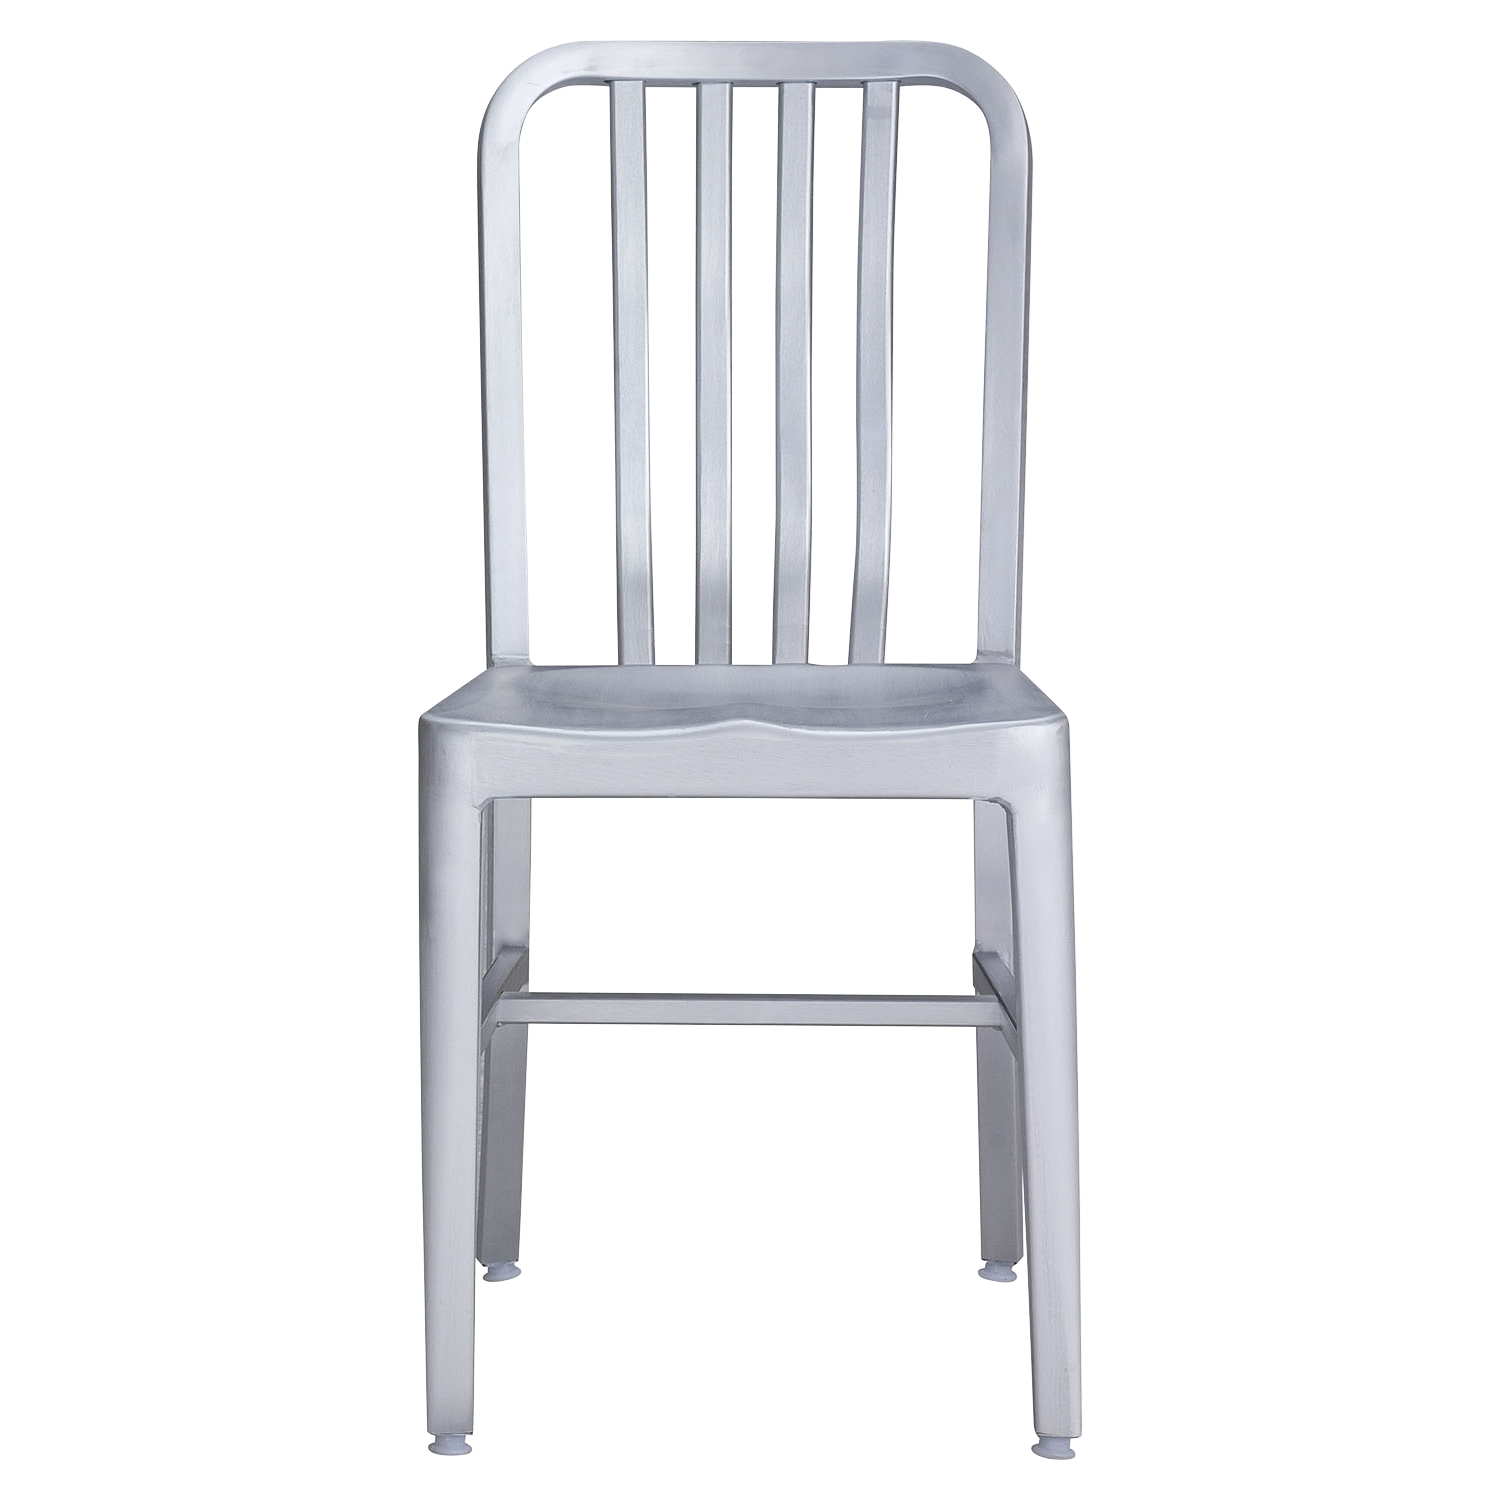 Gastro Brushed Aluminum Dining Chair - ZM-701197